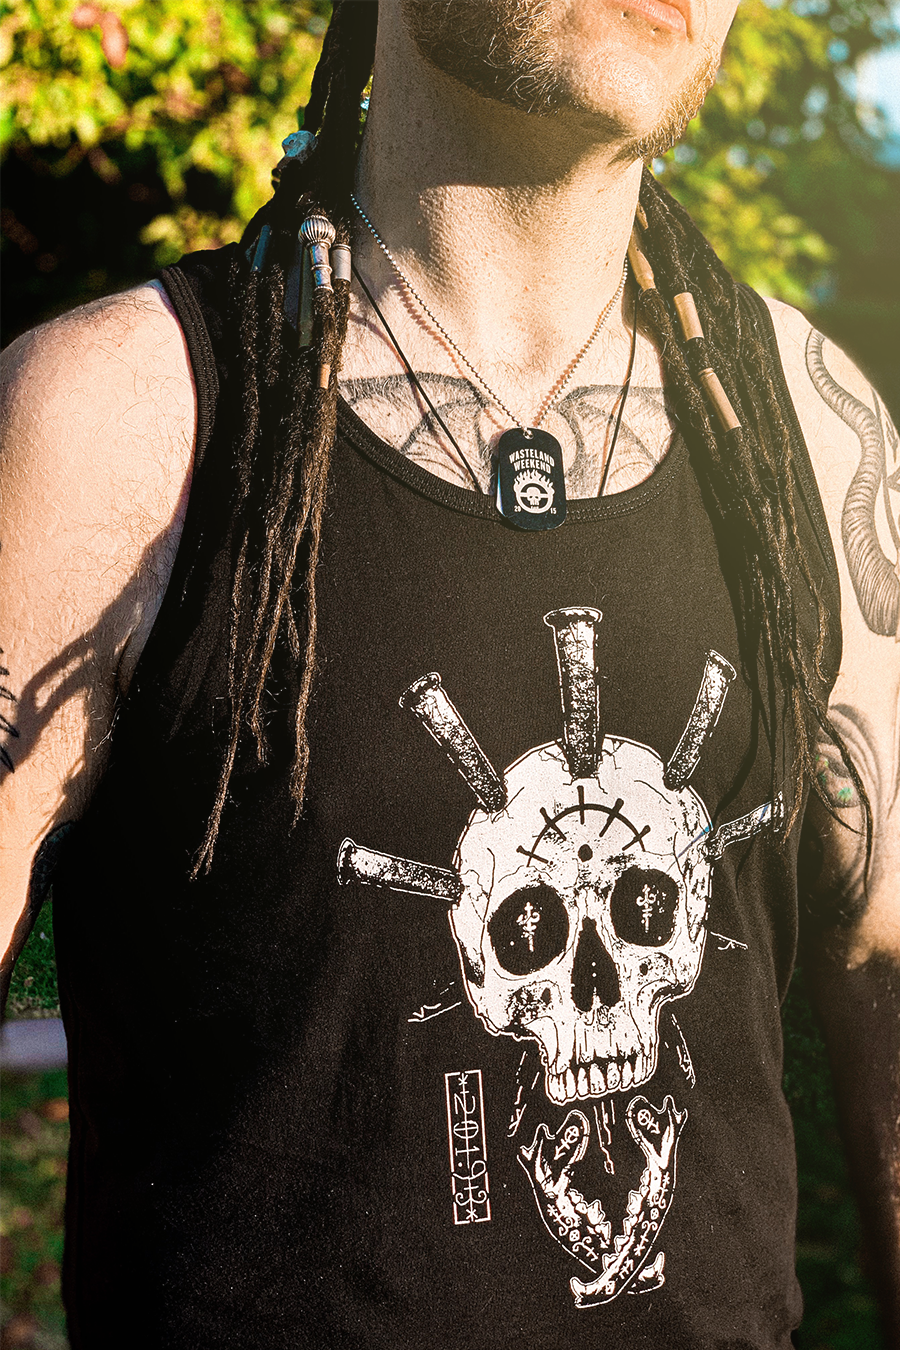 Saints Skull Tank Top